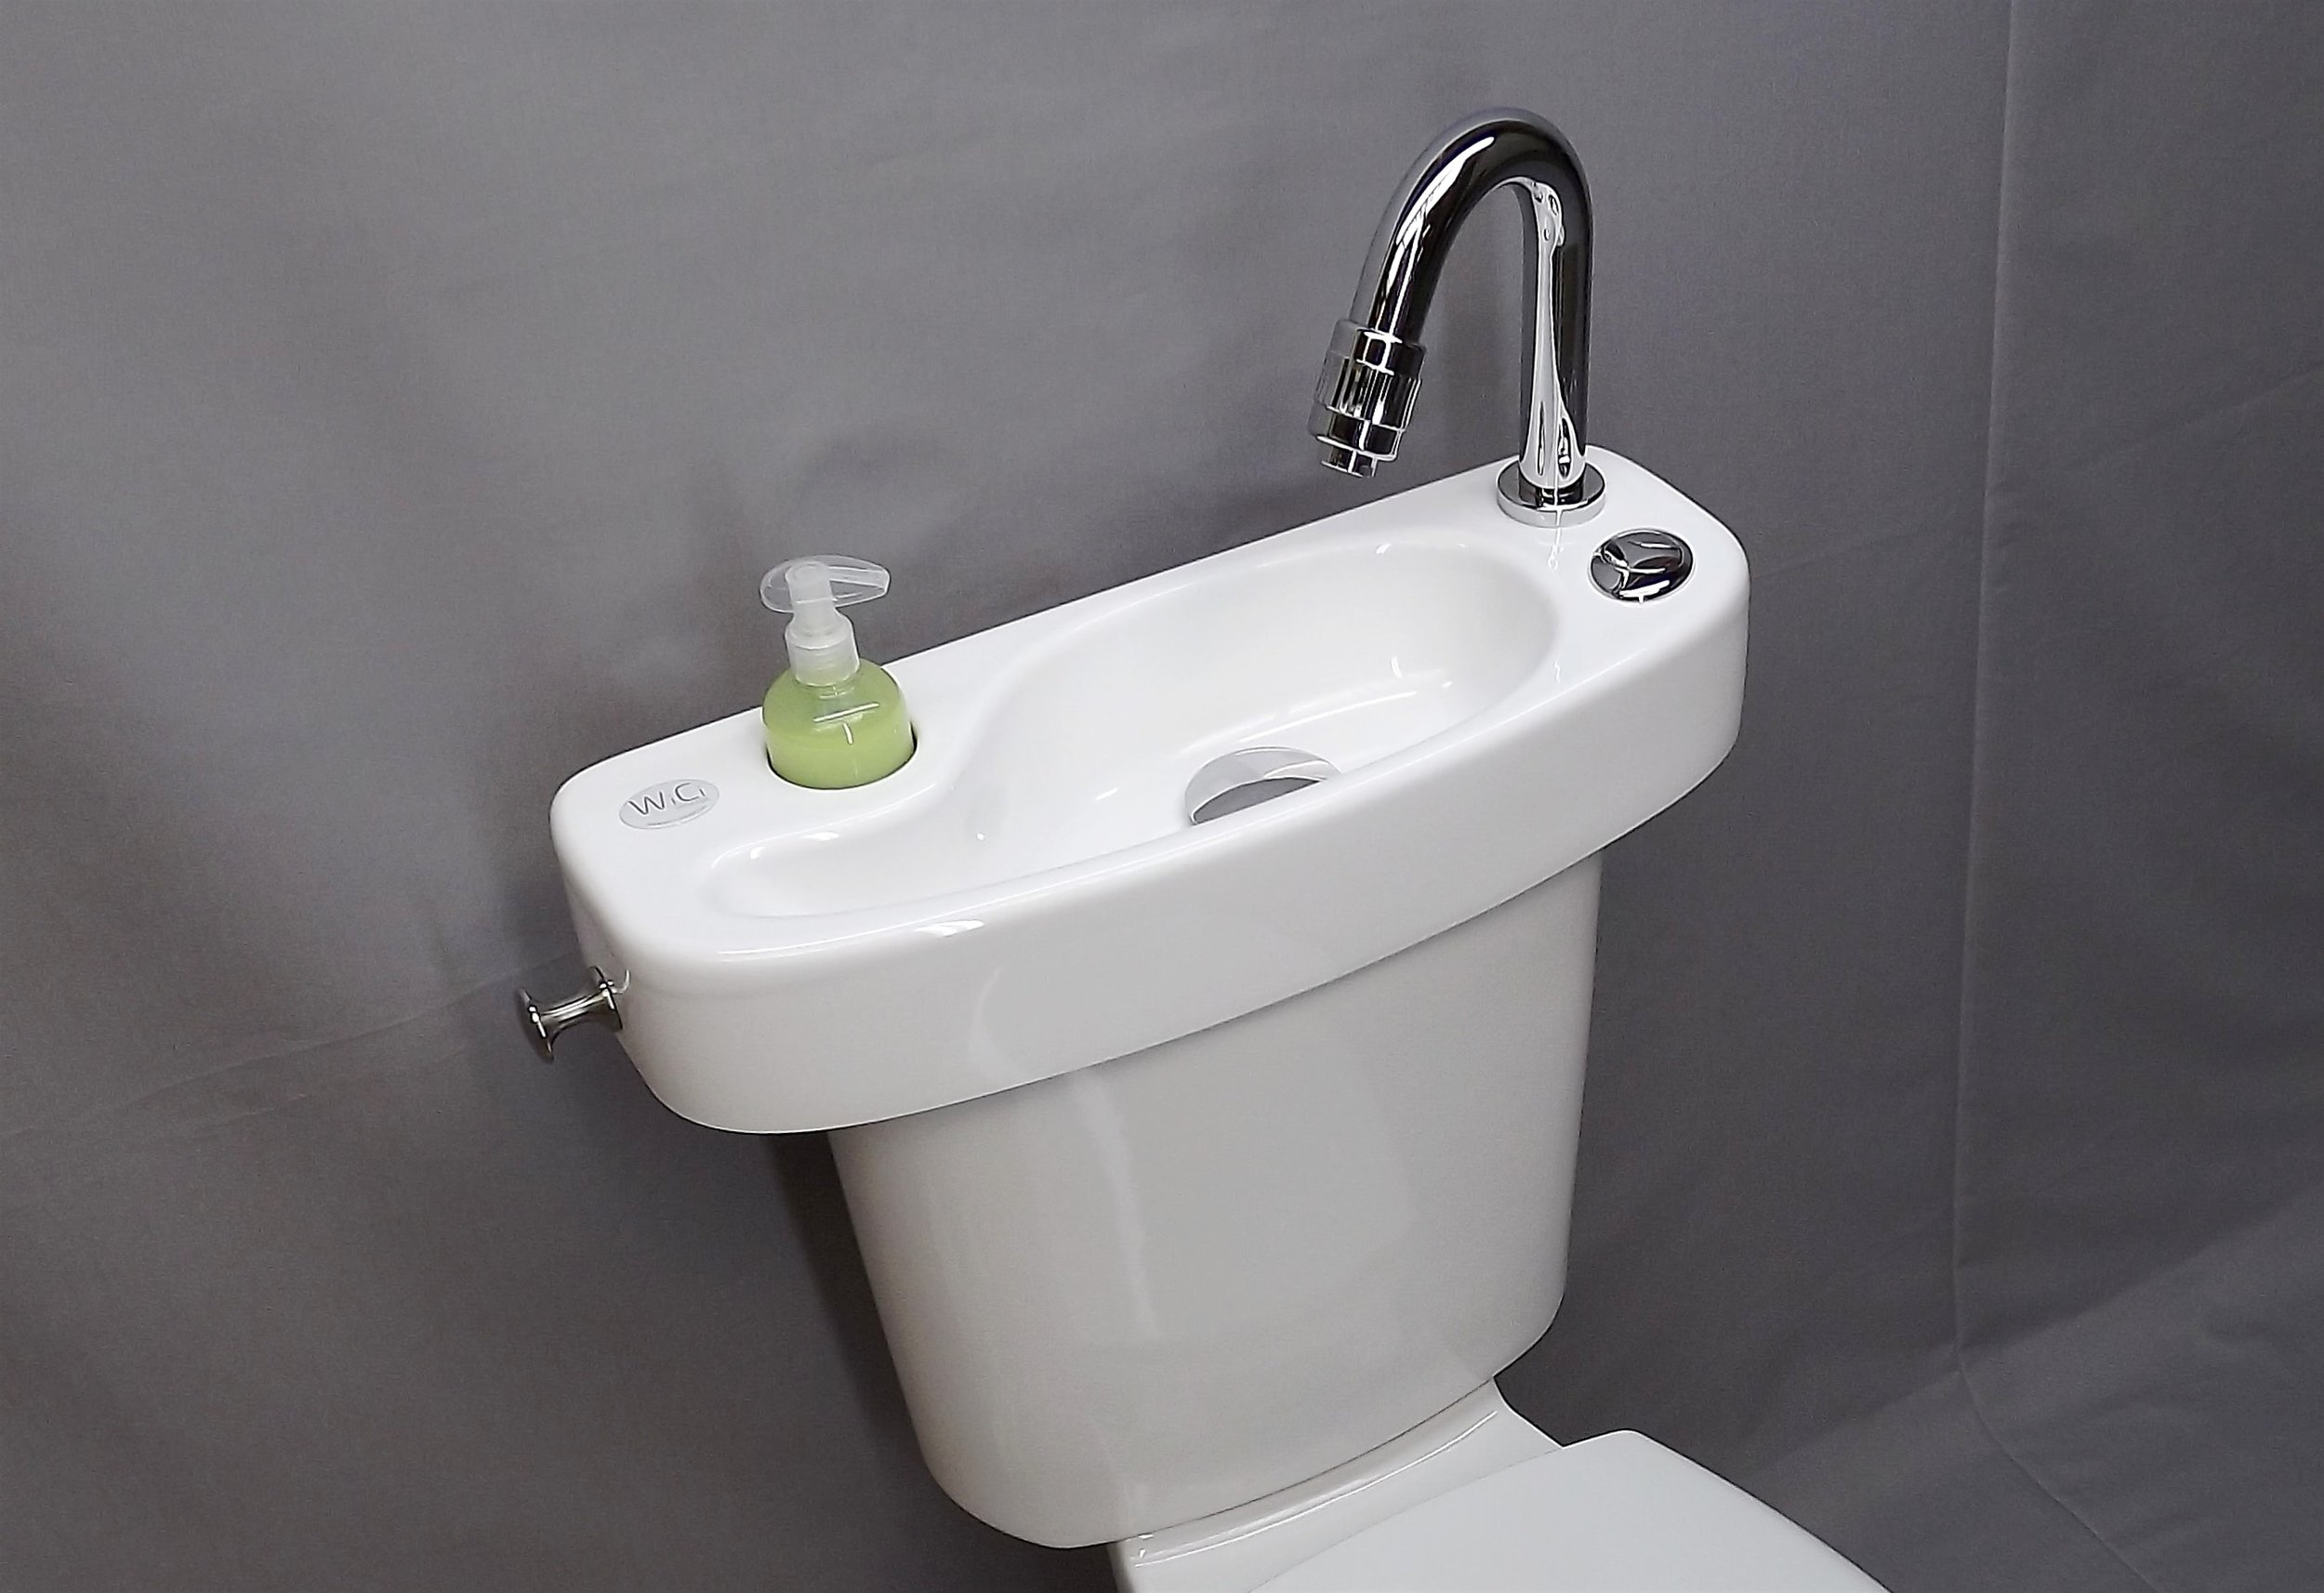 WiCi- the water used for washing hands will be used by the next person to flush the toilet, and so on.